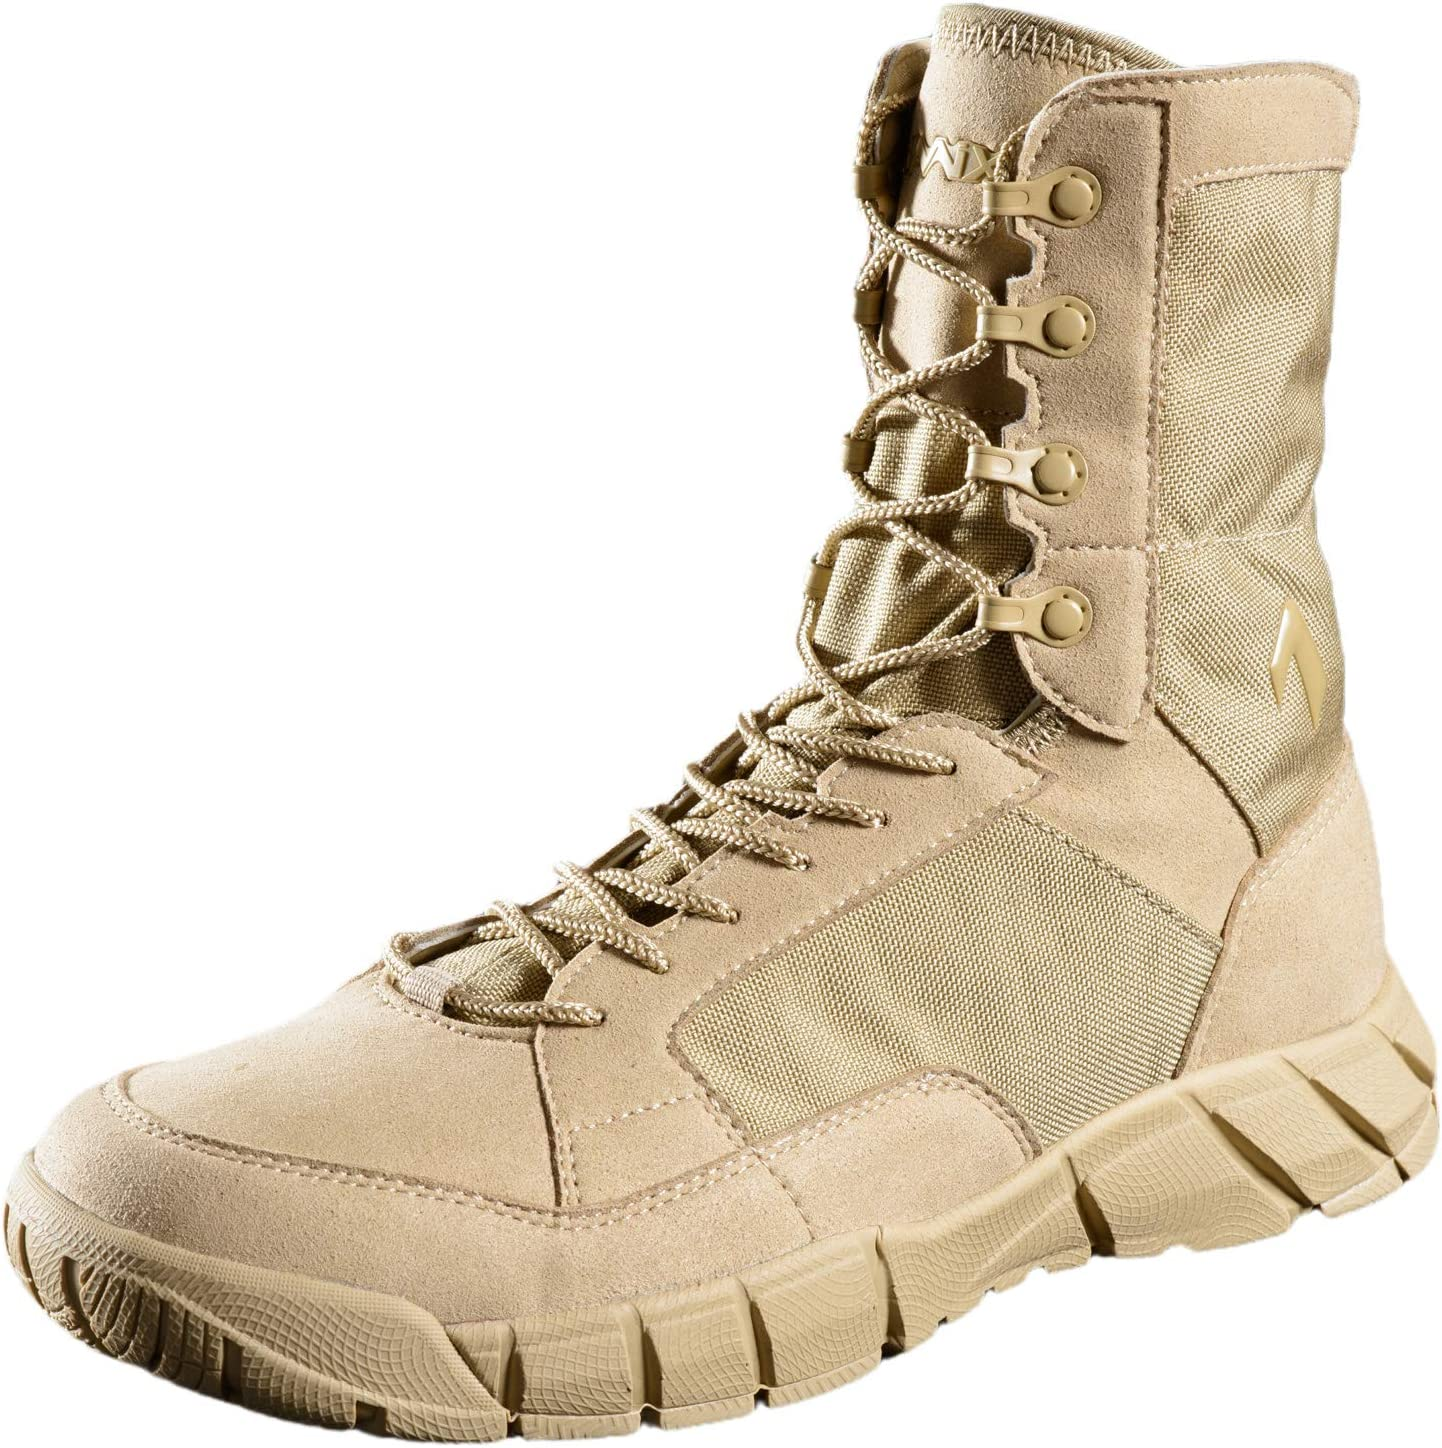 PAVEHAWK Men's 8 inch Tactical Boots 別倉庫からの配送 Casual バースデー 記念日 ギフト 贈物 お勧め 通販 Lightweight Outdoor